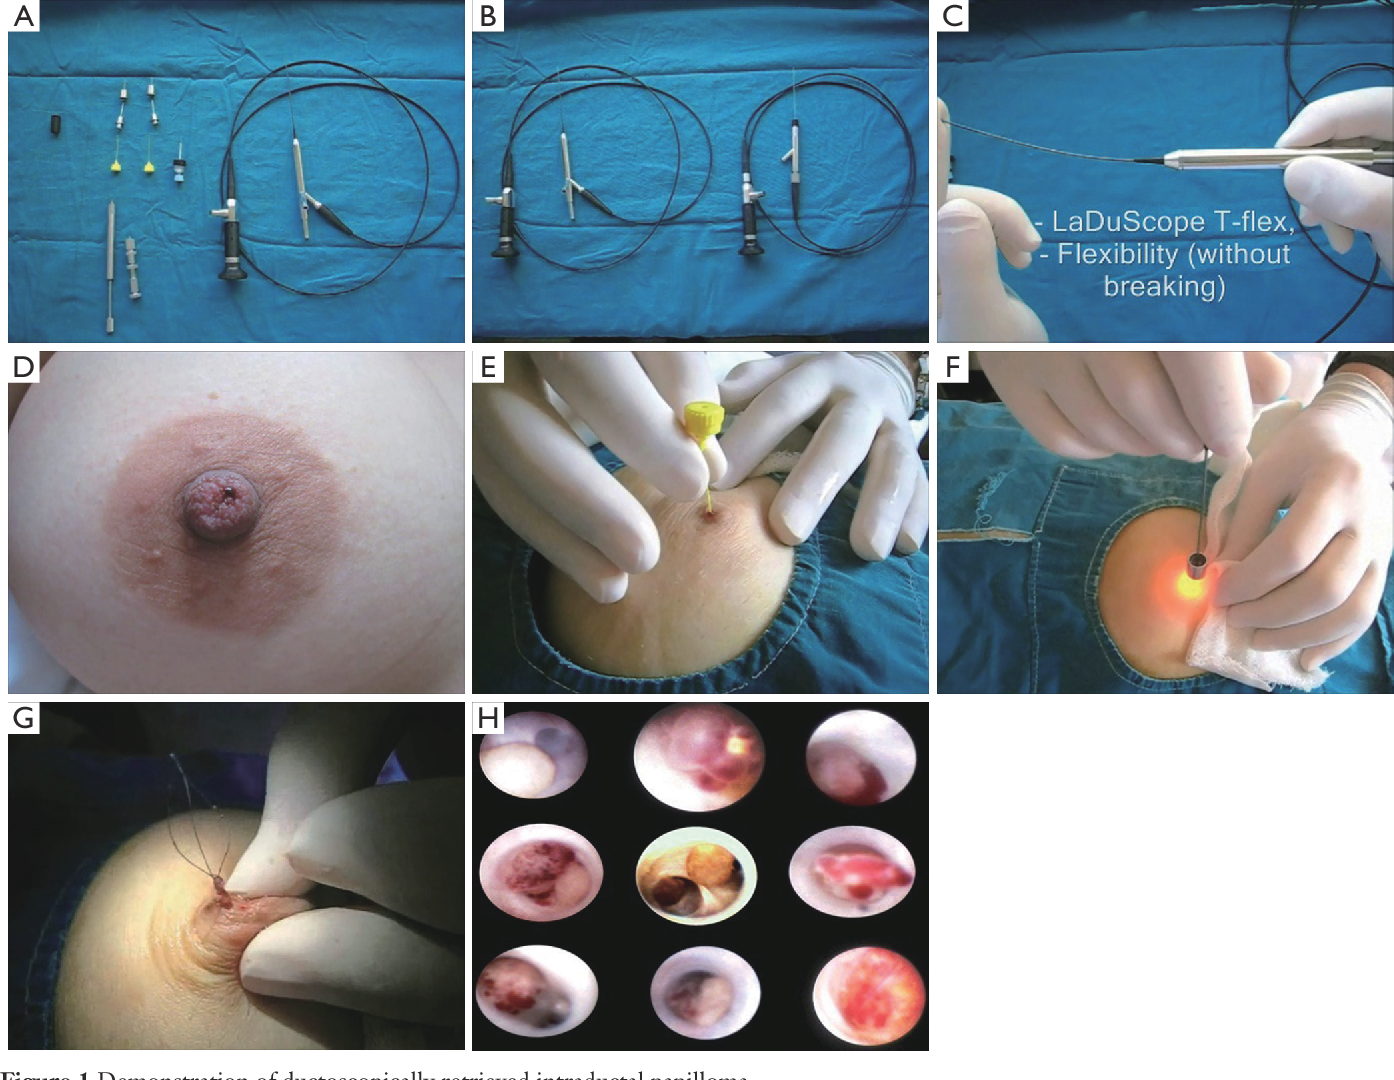 Intraductal papilloma surgical excision.